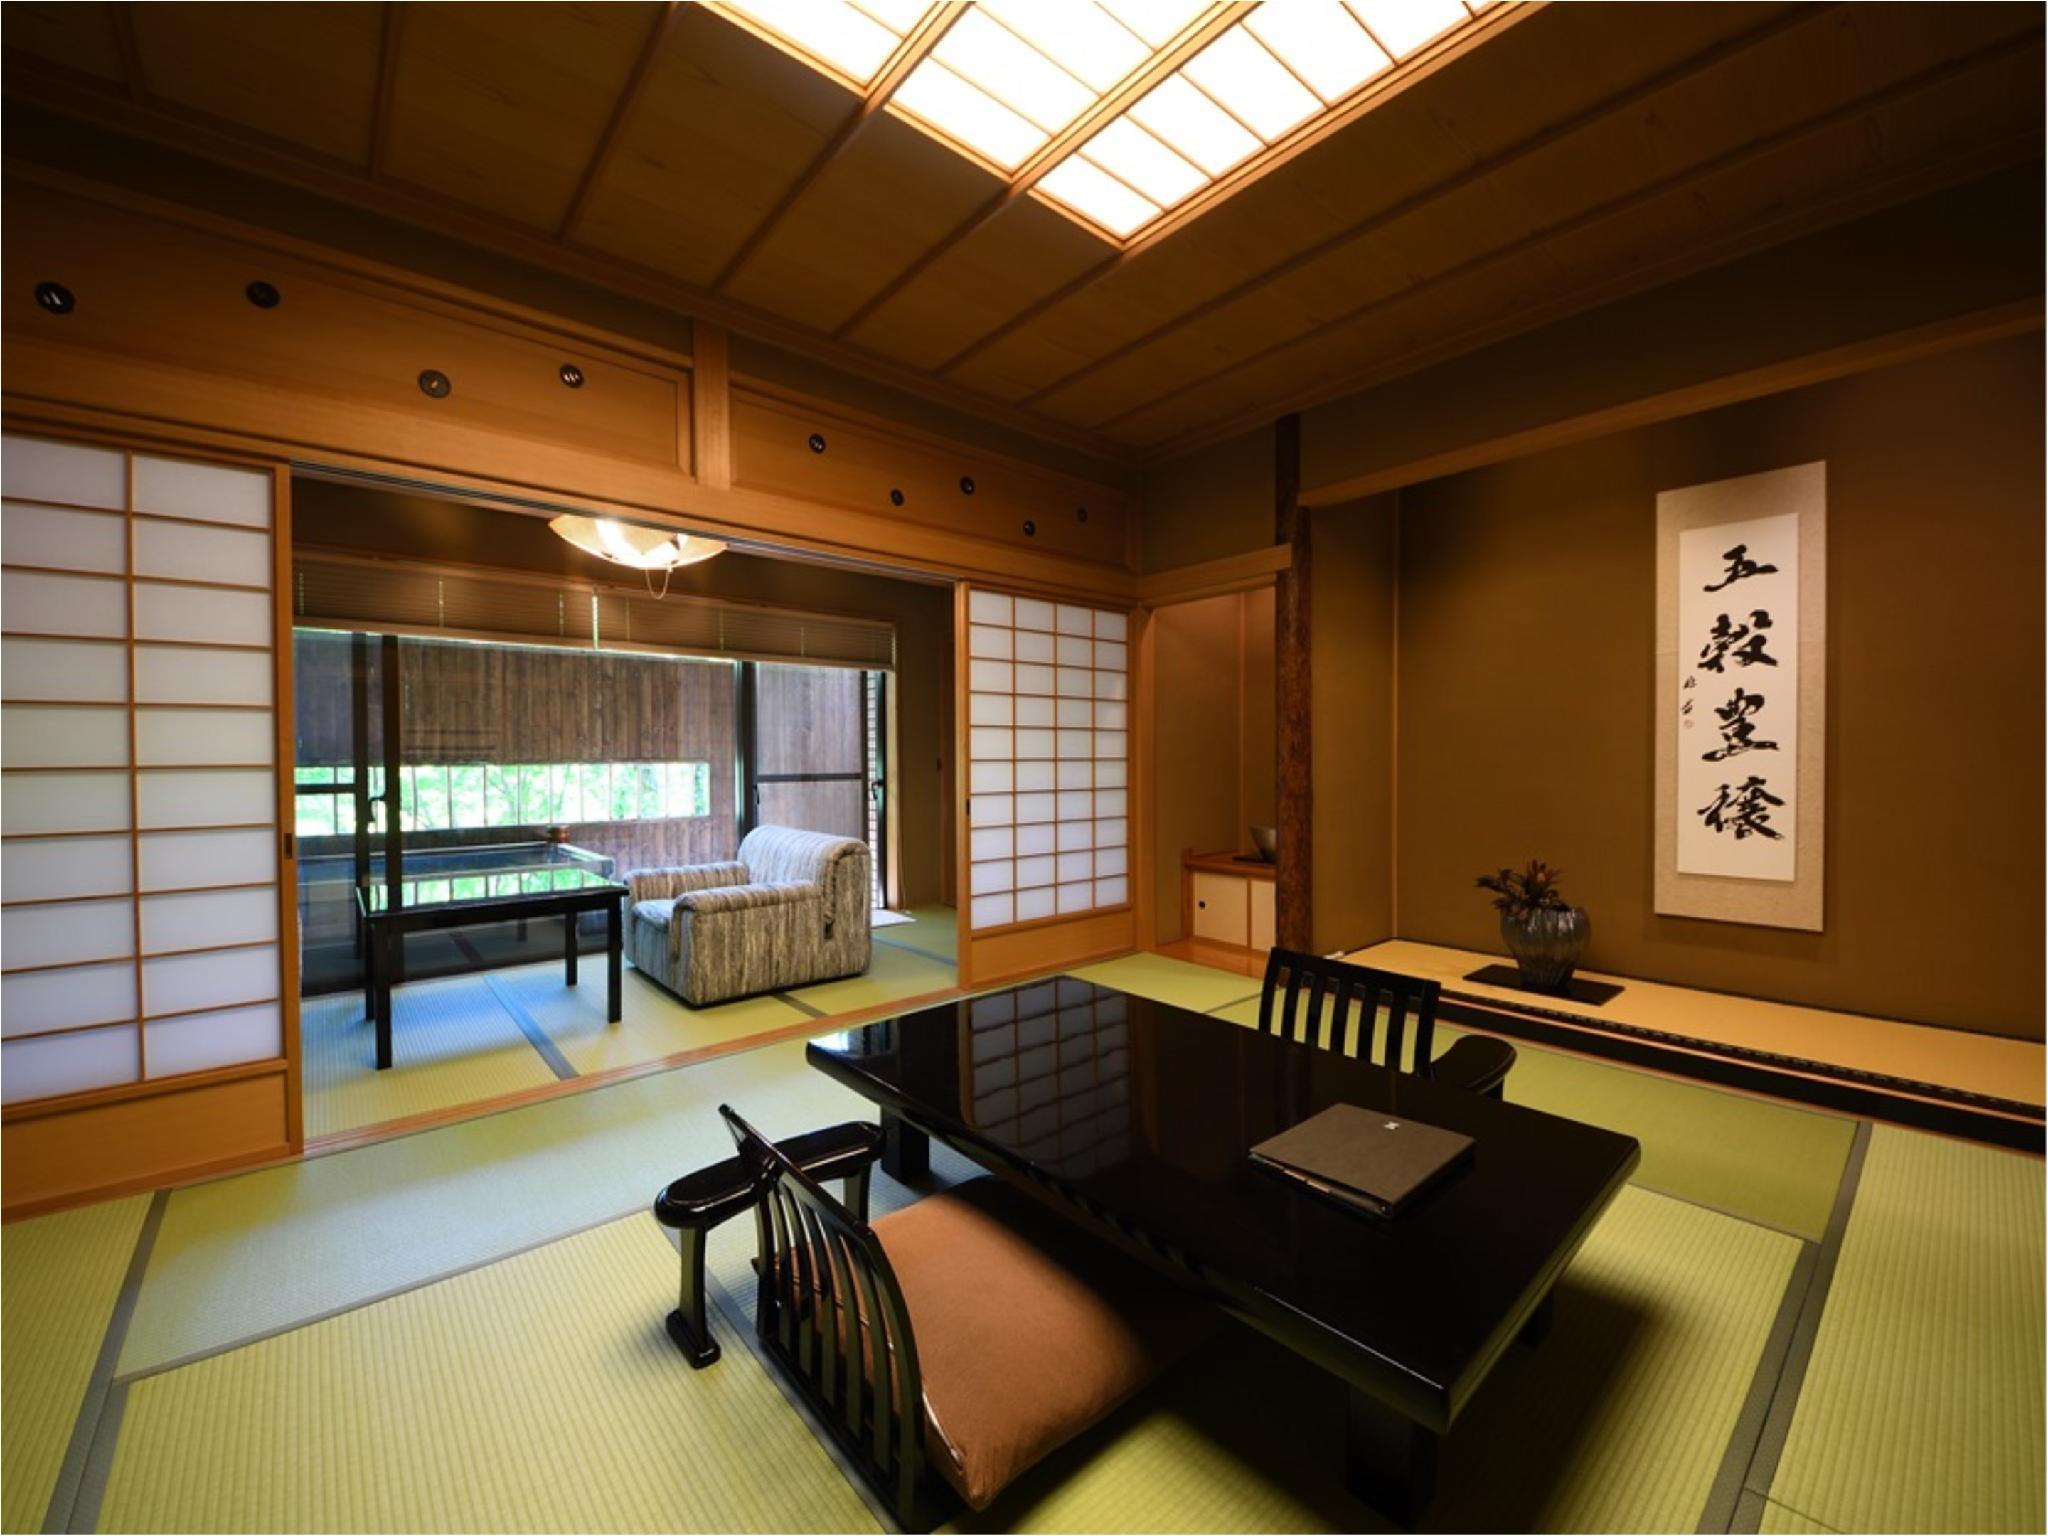 Detached Special Japanese/Western-style Room with Open-air Bath